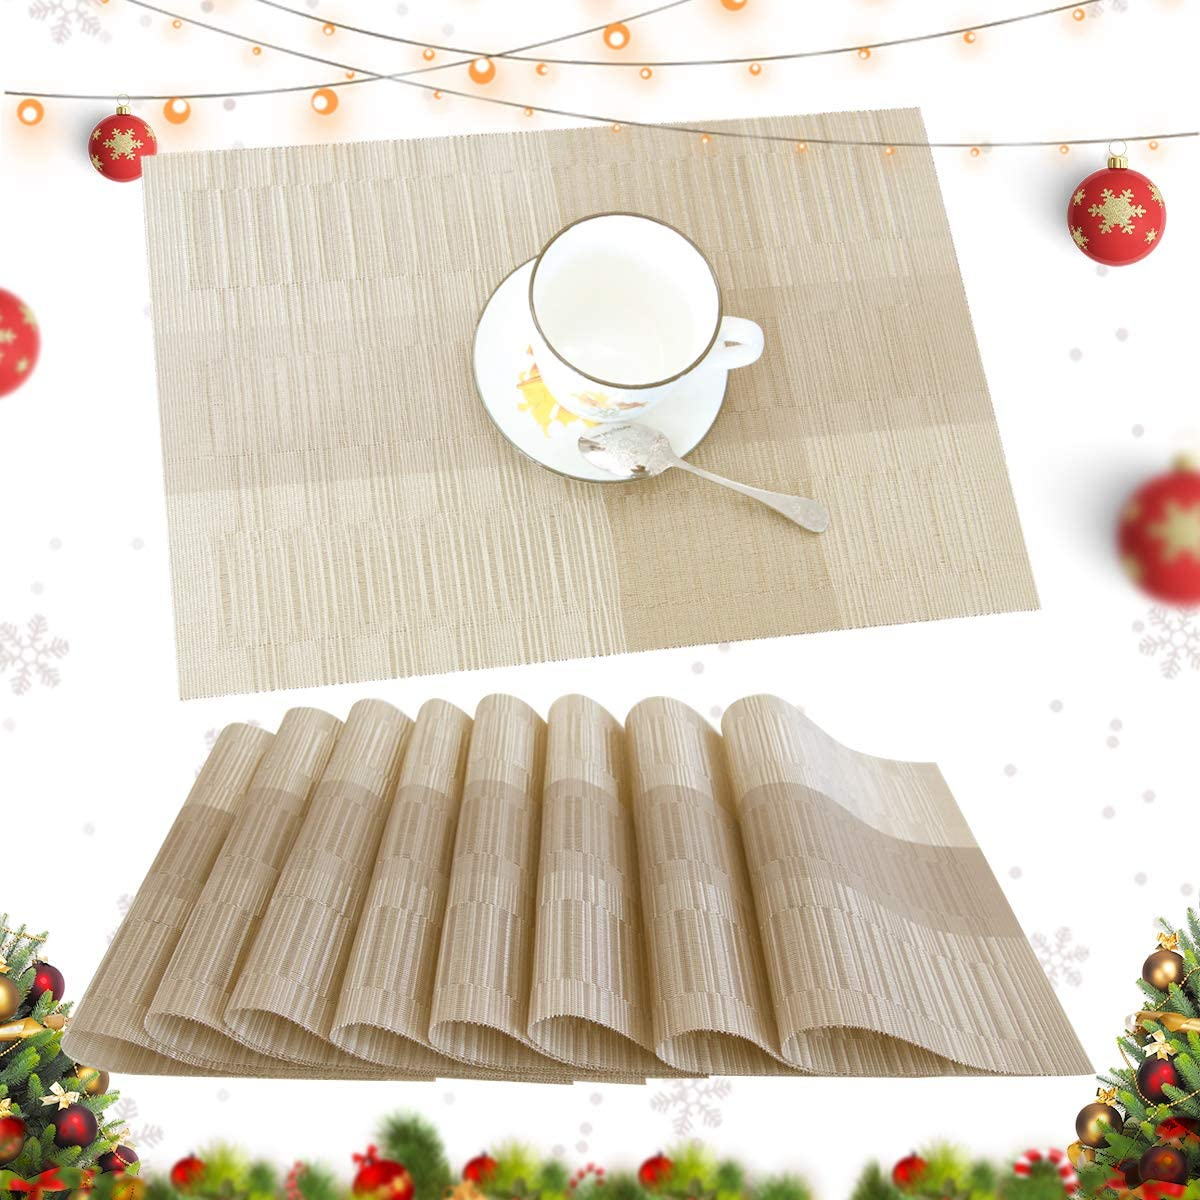 profurni Placemats for Dining Table Heat Resistant Kitchen Table Mats Set of 8 Washable PVC Place Mats Stain Resistant Non-Slip Placemat for Hotel Office,Khaki Gold